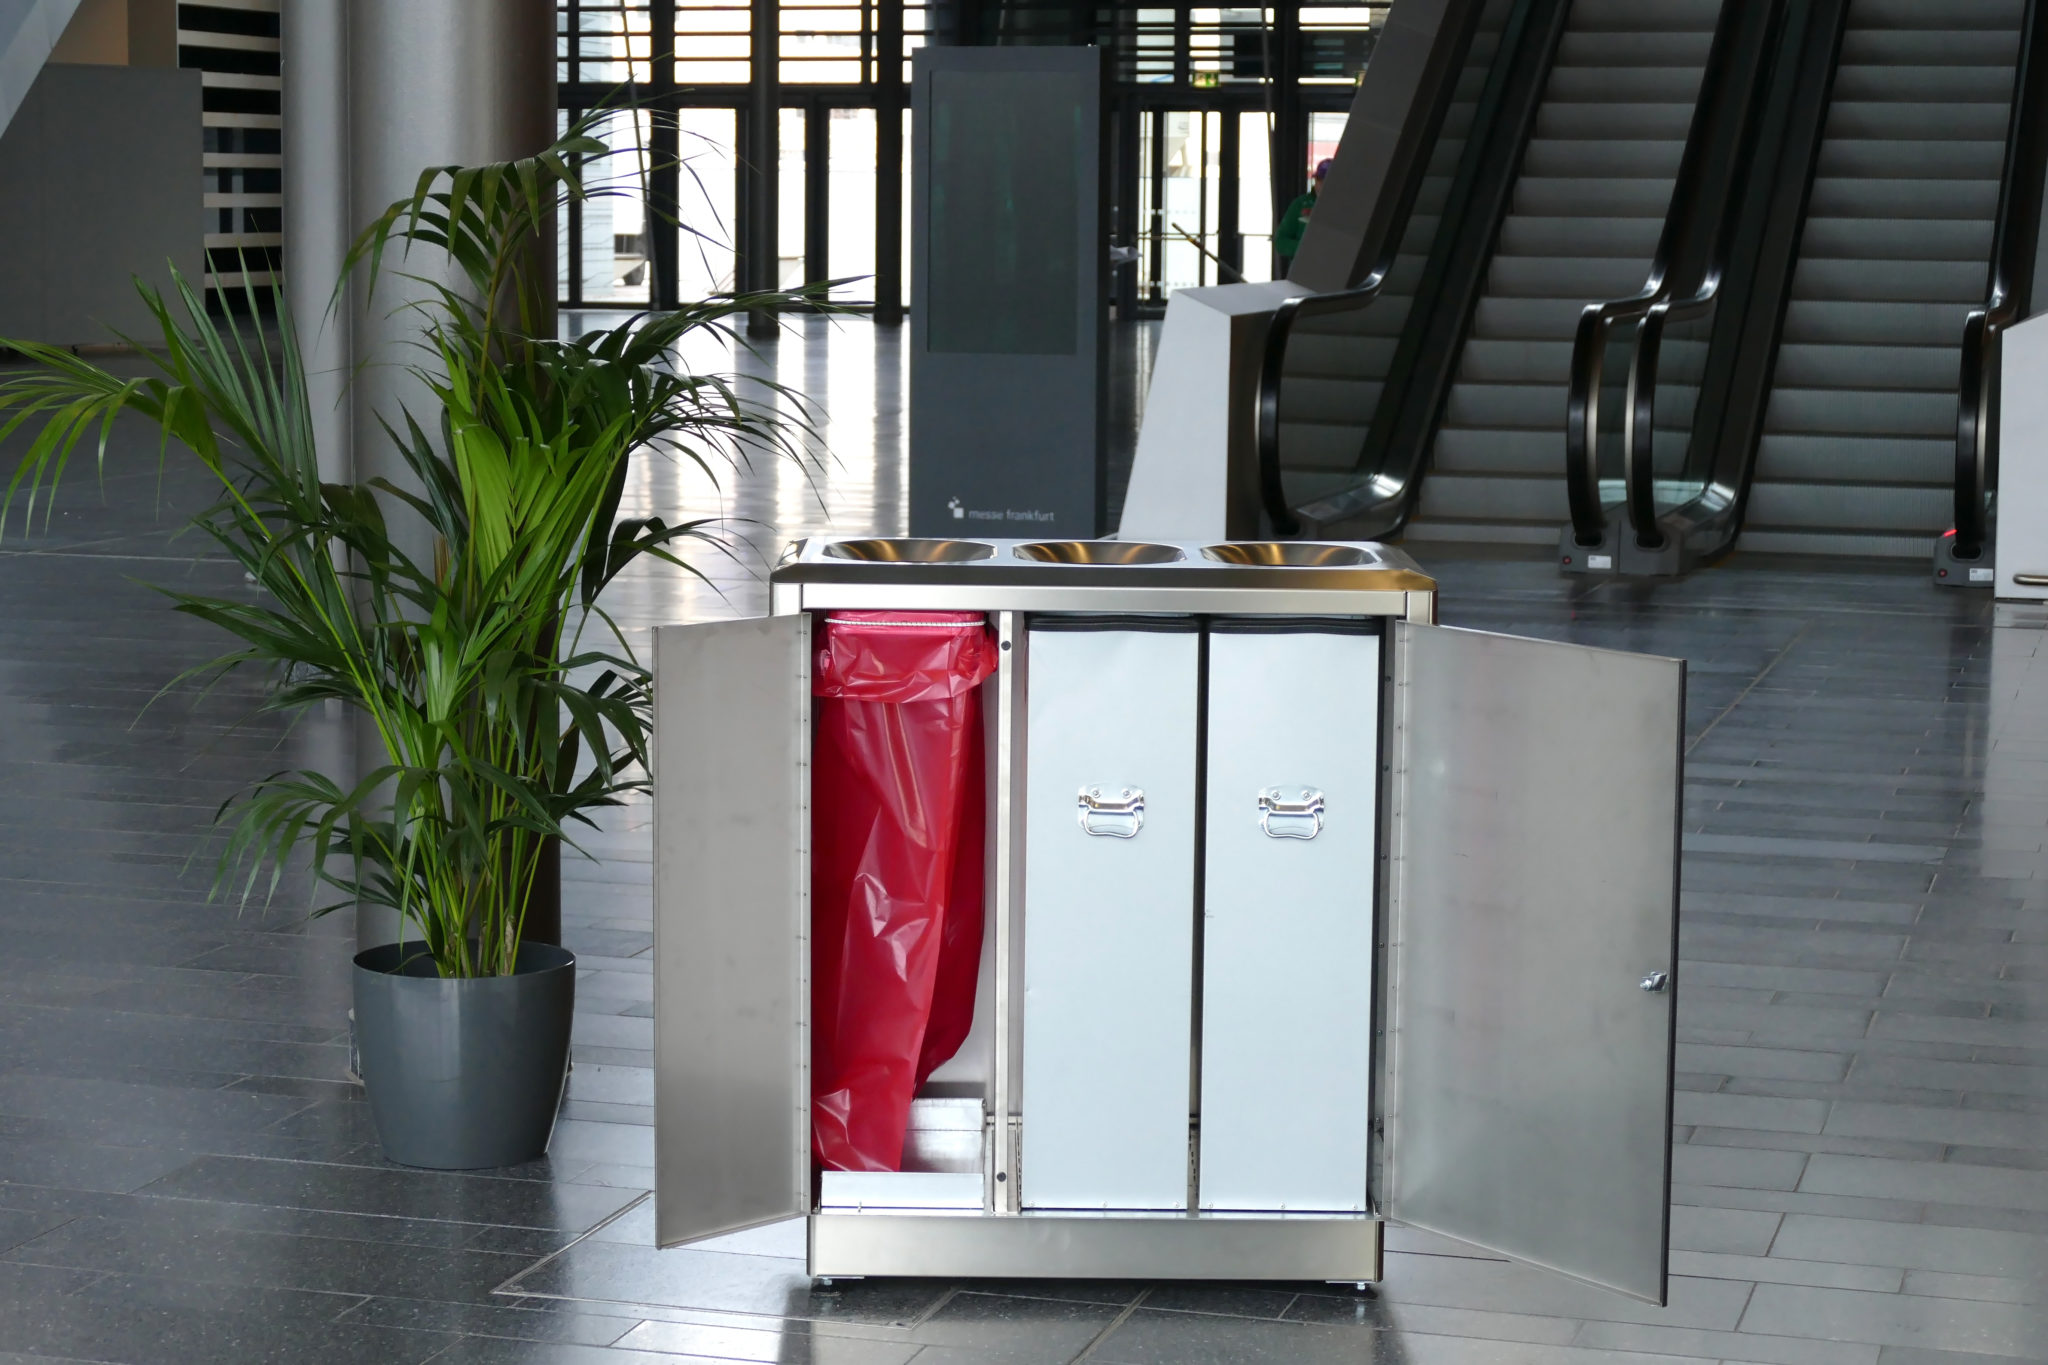 AUWEKO SKYLINE S-300 Litter and Recycling Bins